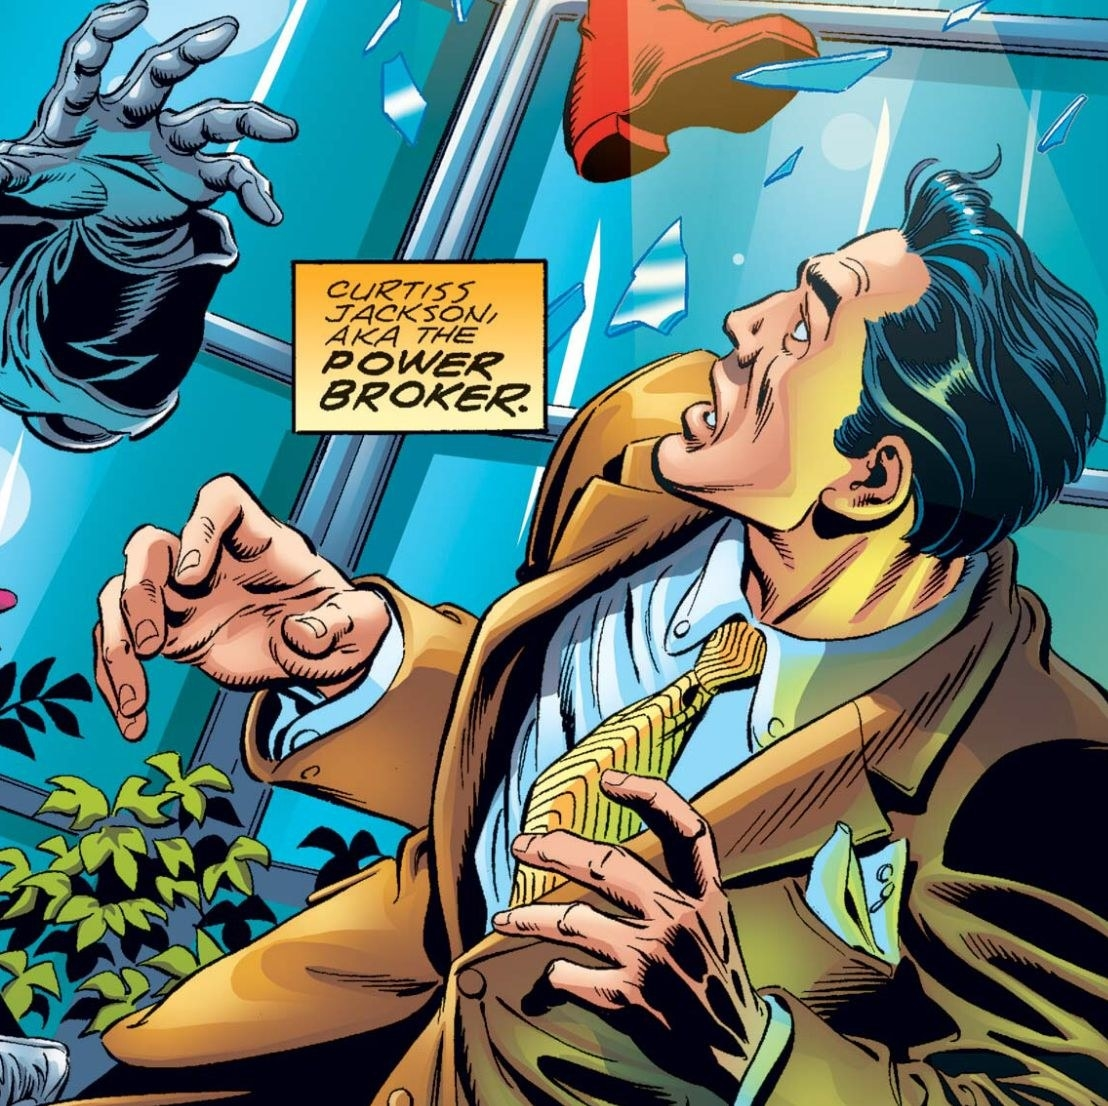 The Power Broker in the comics